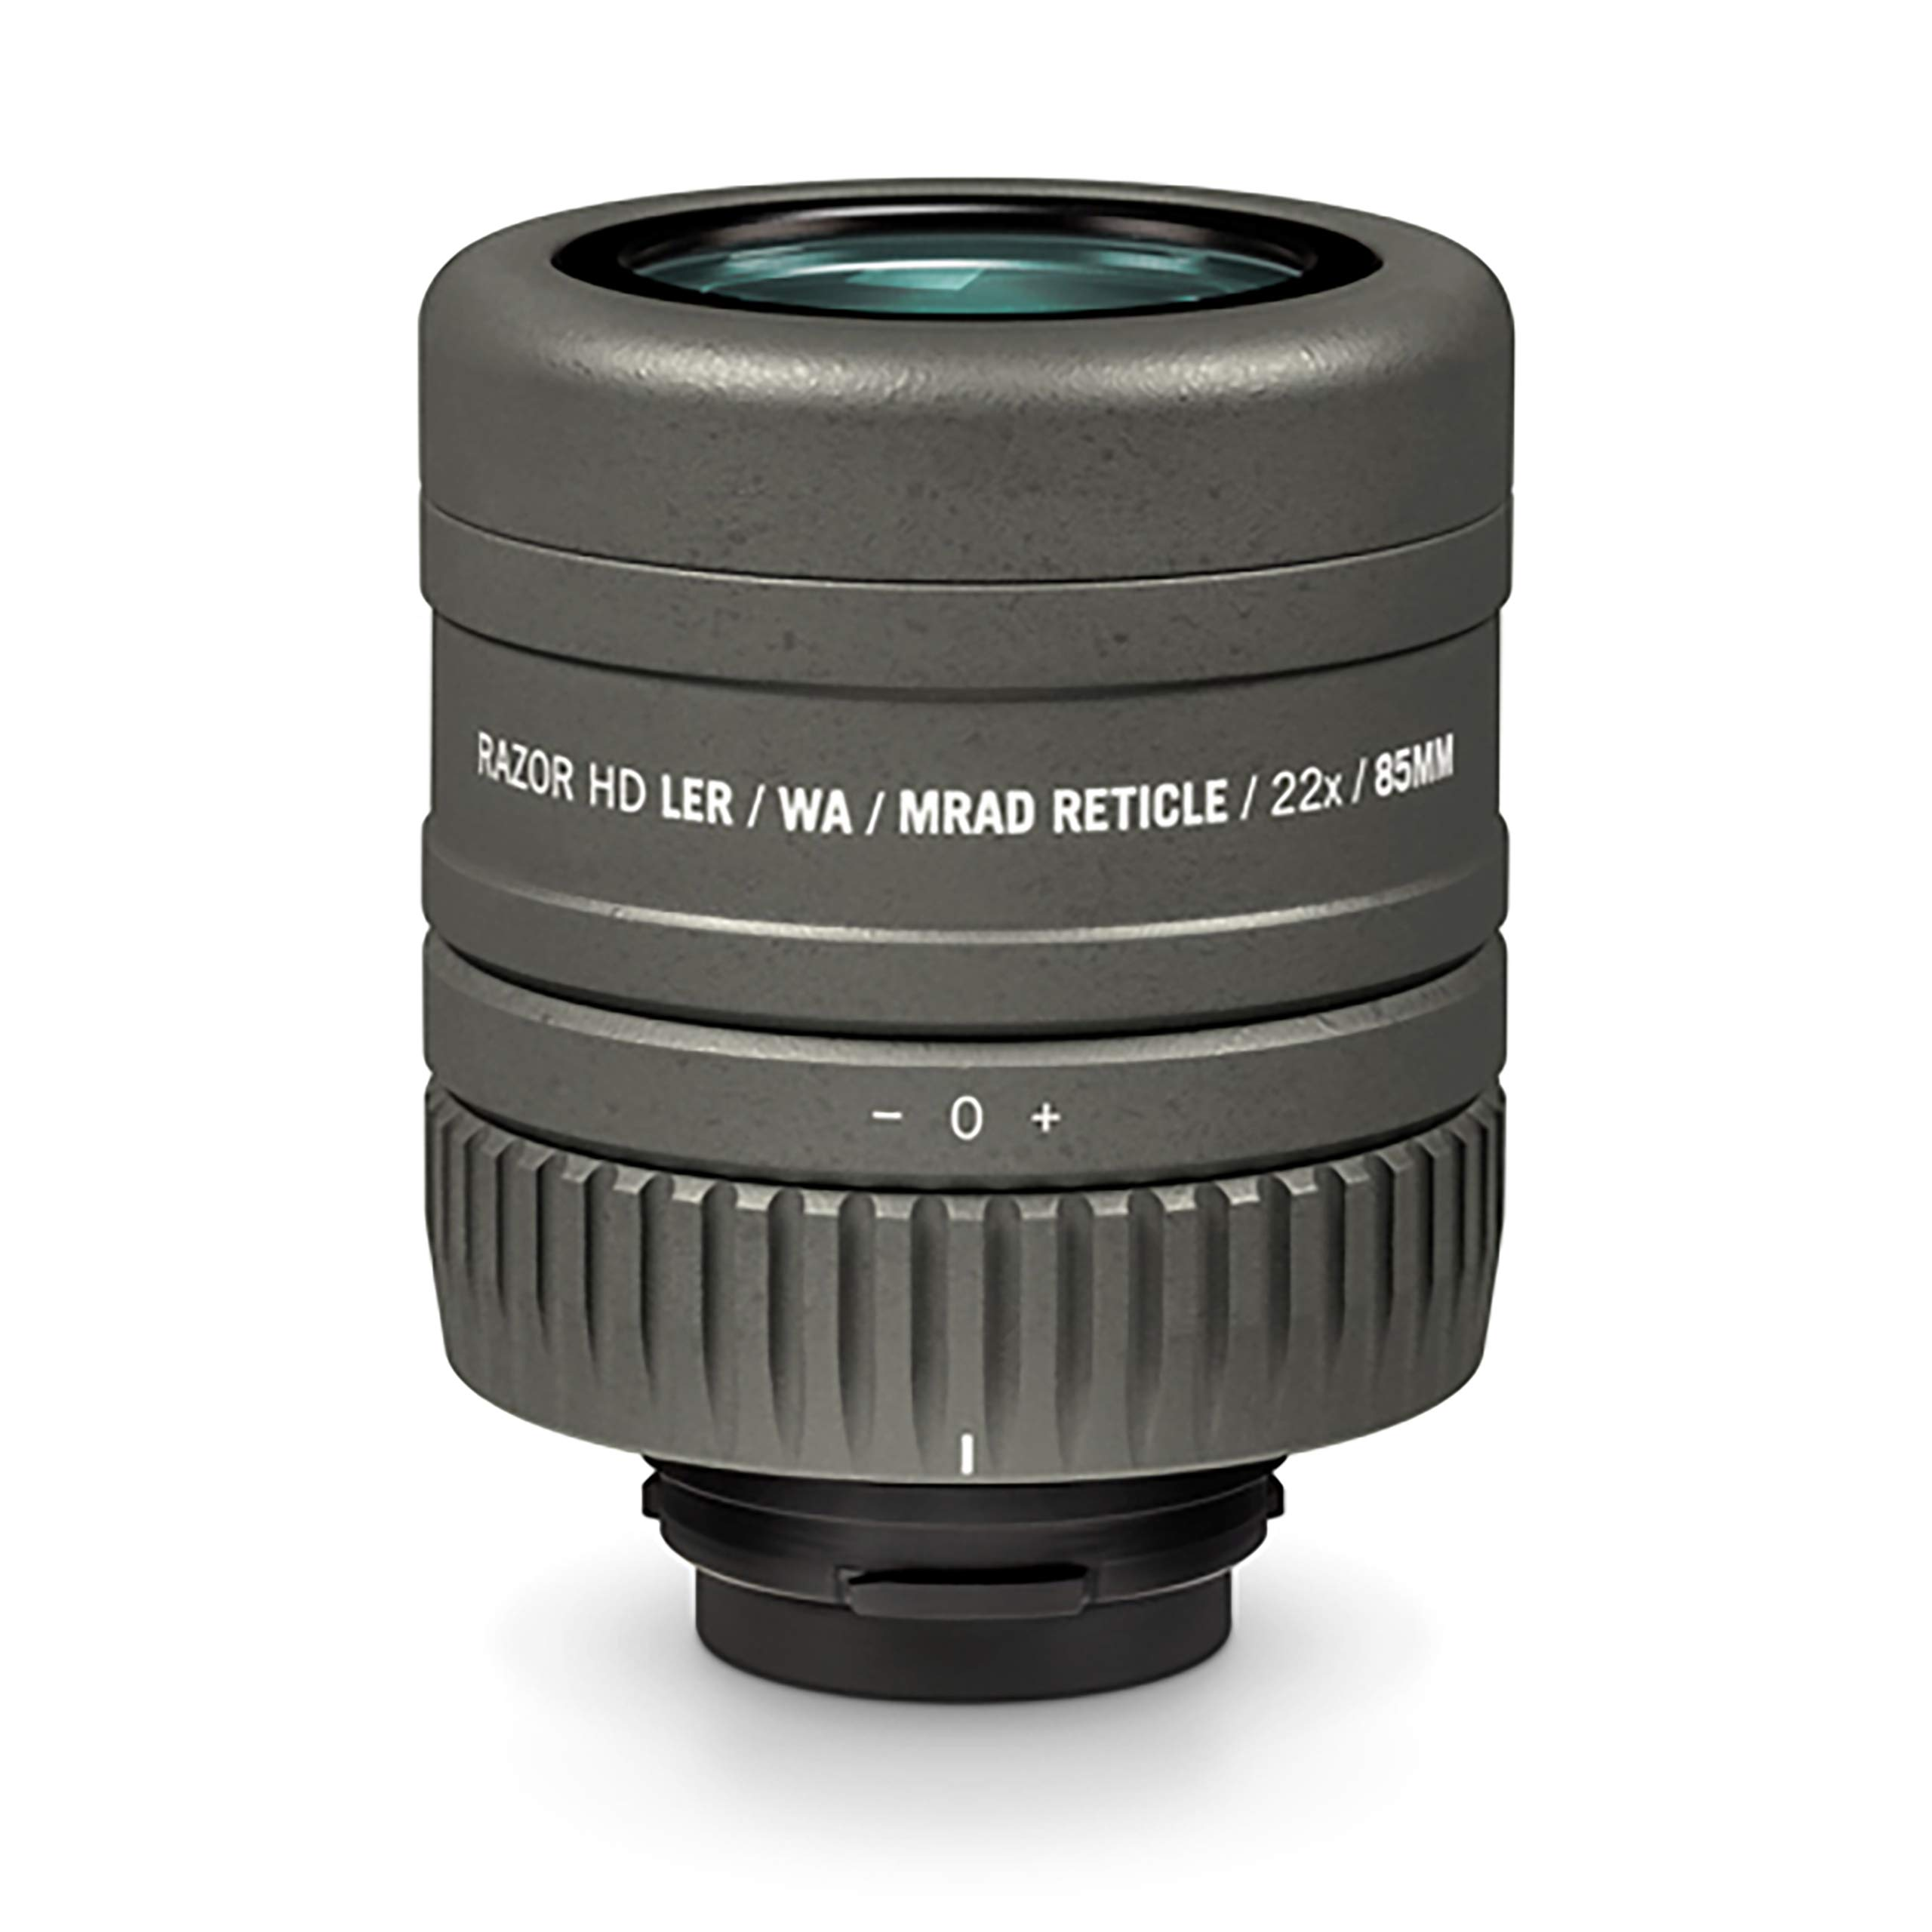 Vortex Optics Razor HD Ranging Reticle Eyepiece 22x - MRAD